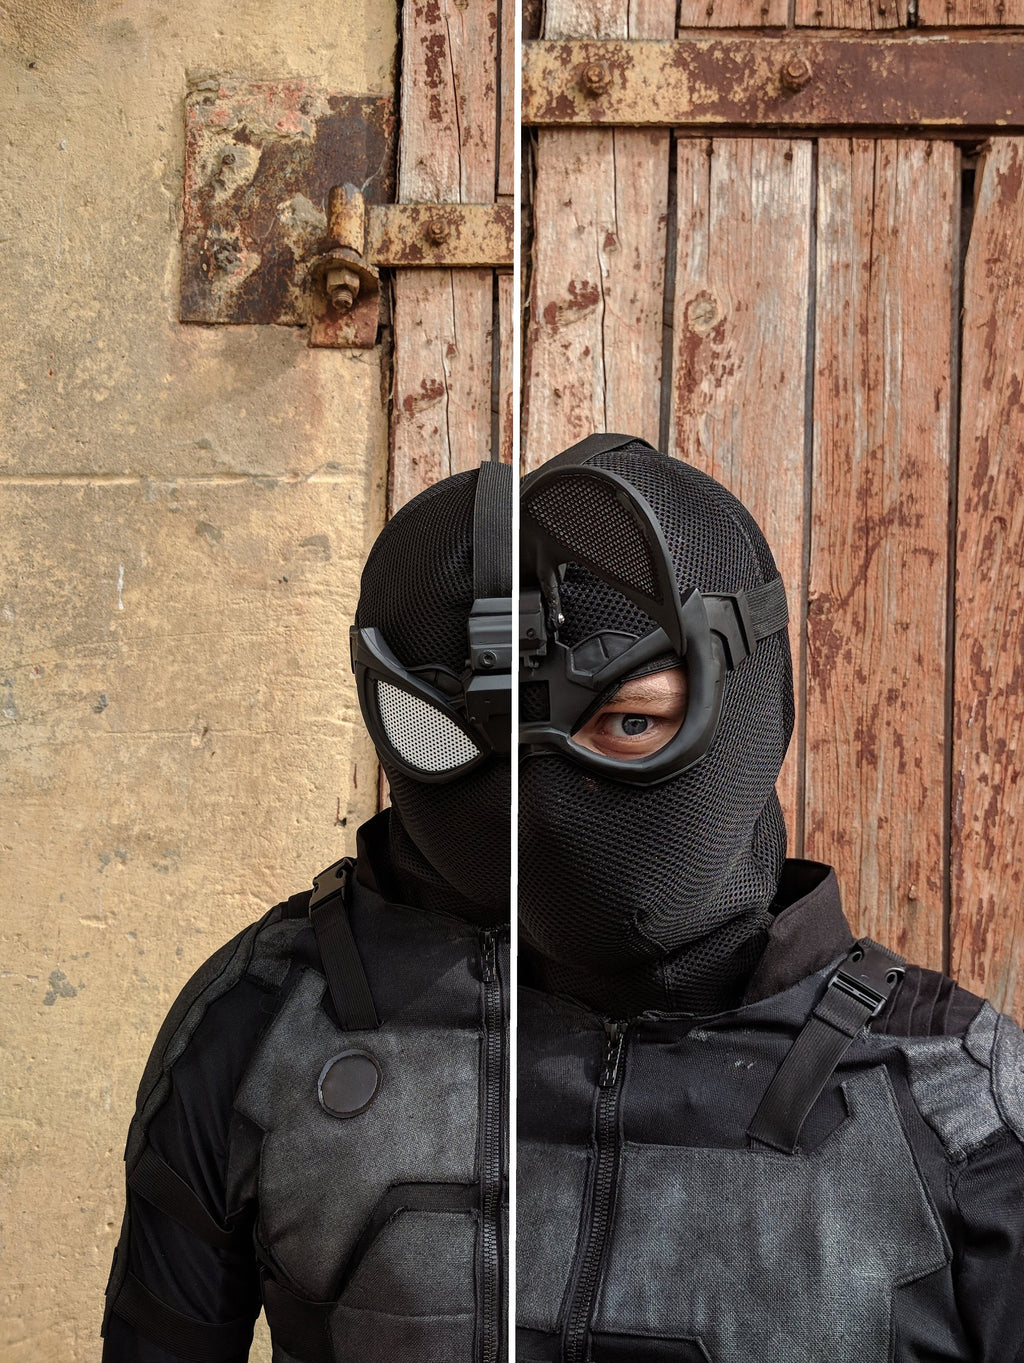 Spider man far from home / Stealth mask